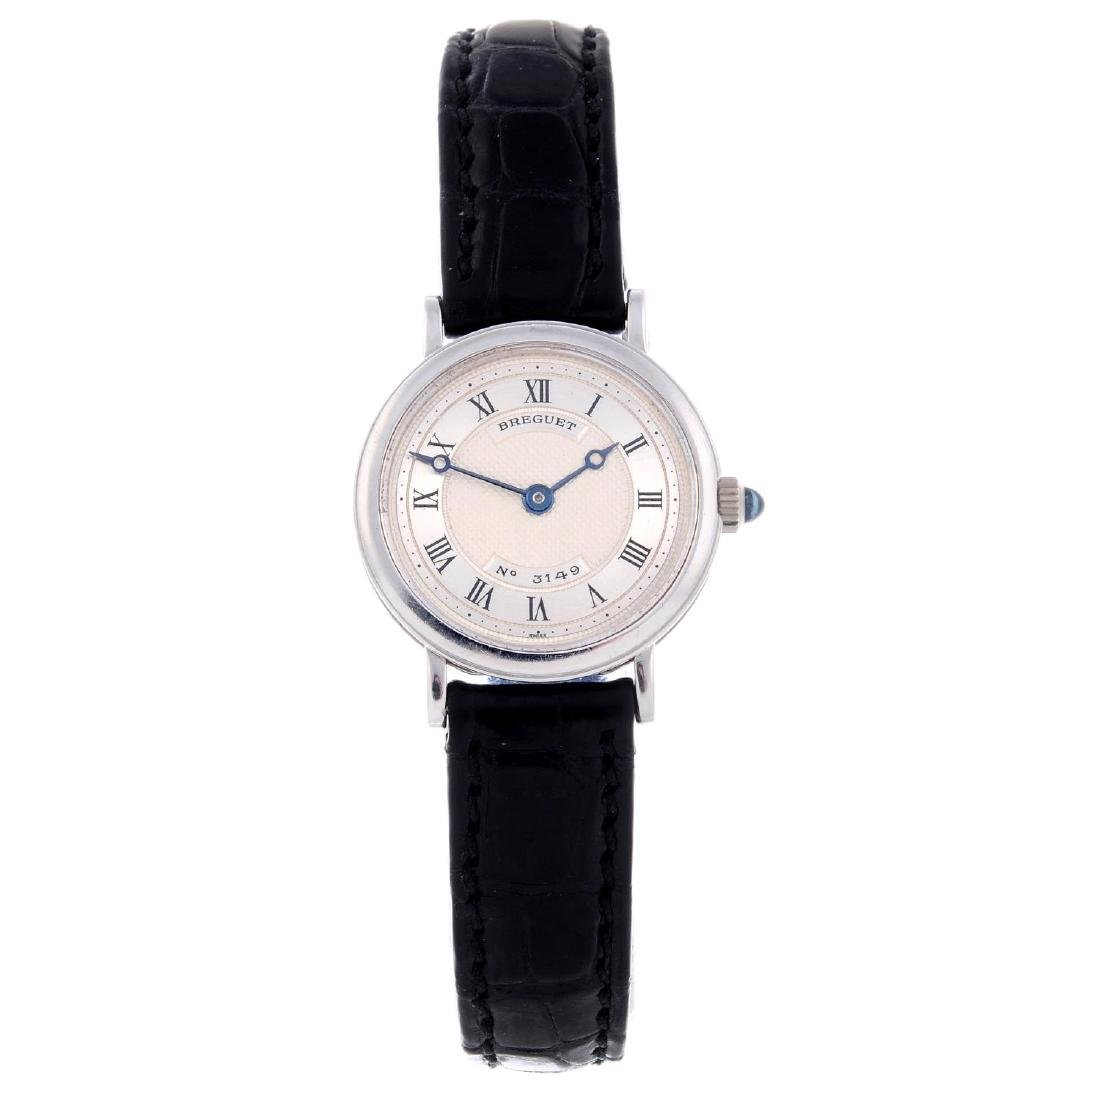 BREGUET - a lady's wrist watch. 18ct white gold case.